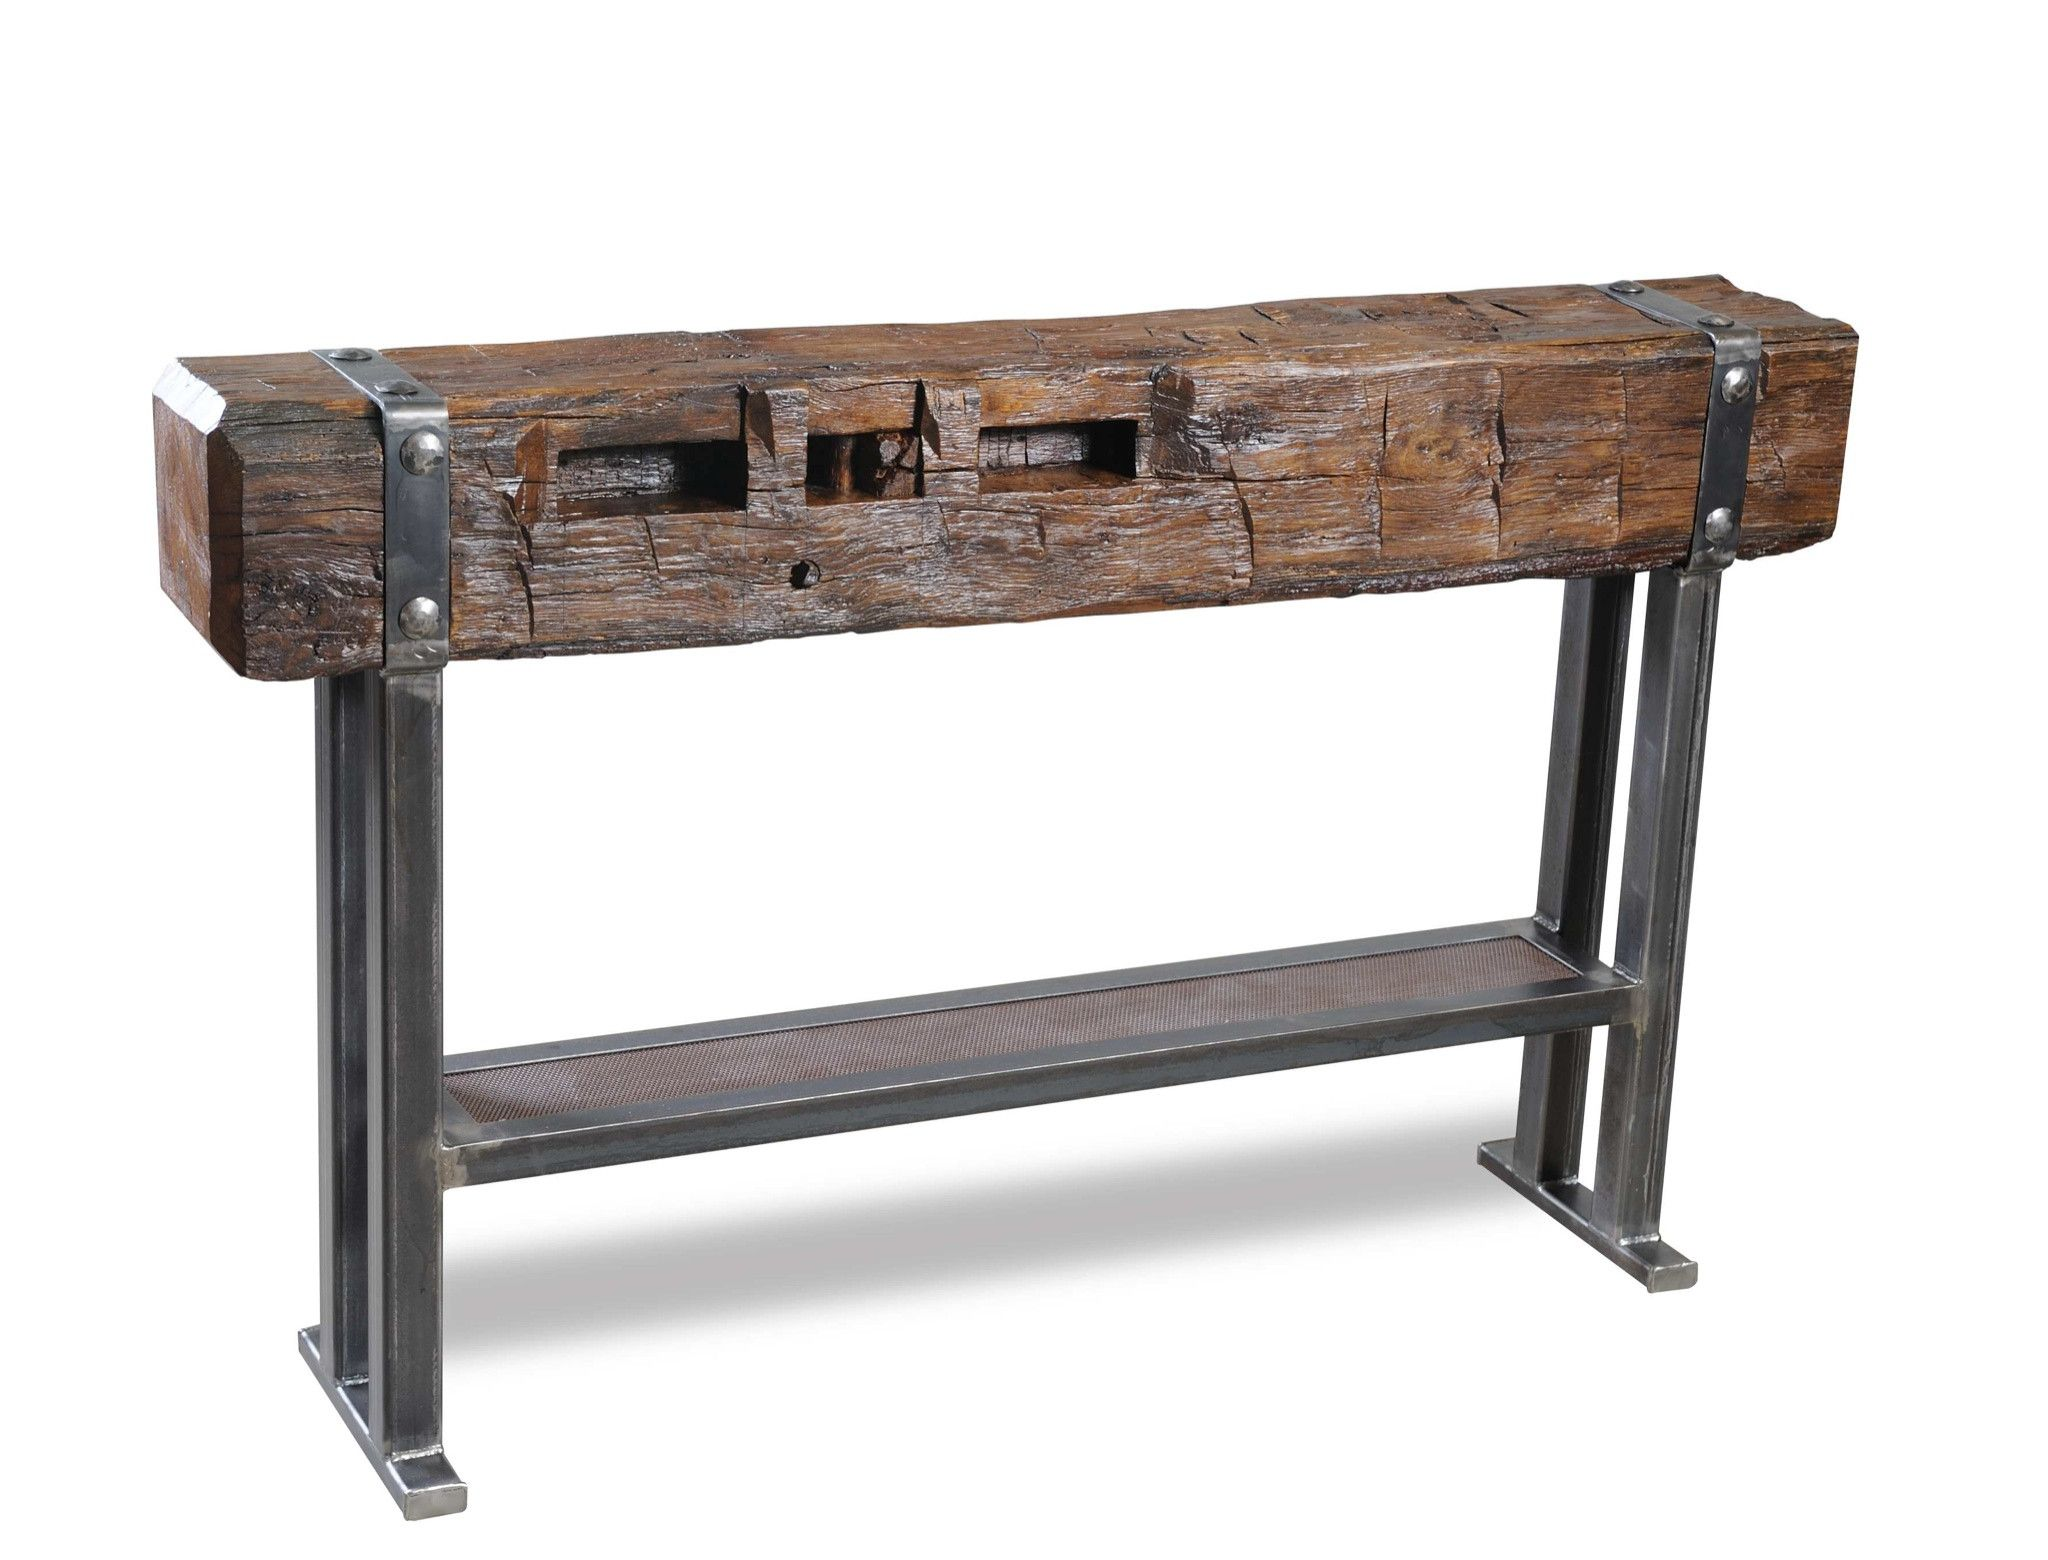 60 inch reclaimed wood console table wood creations pinterest console tables old hands. Black Bedroom Furniture Sets. Home Design Ideas